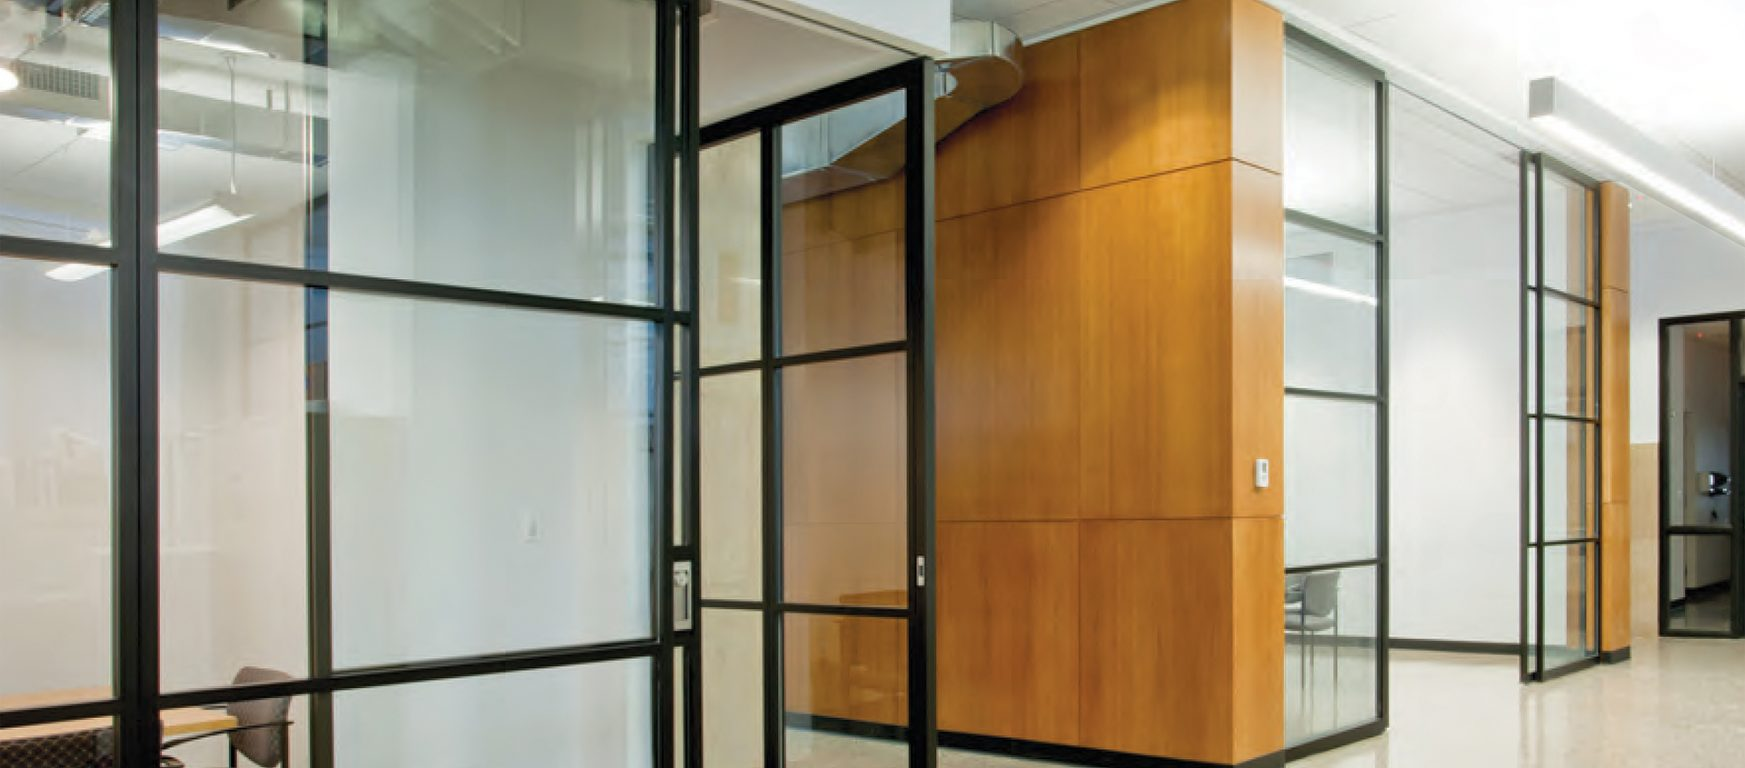 PK-30 Dark Framed Sliding Fixed Glass Doors